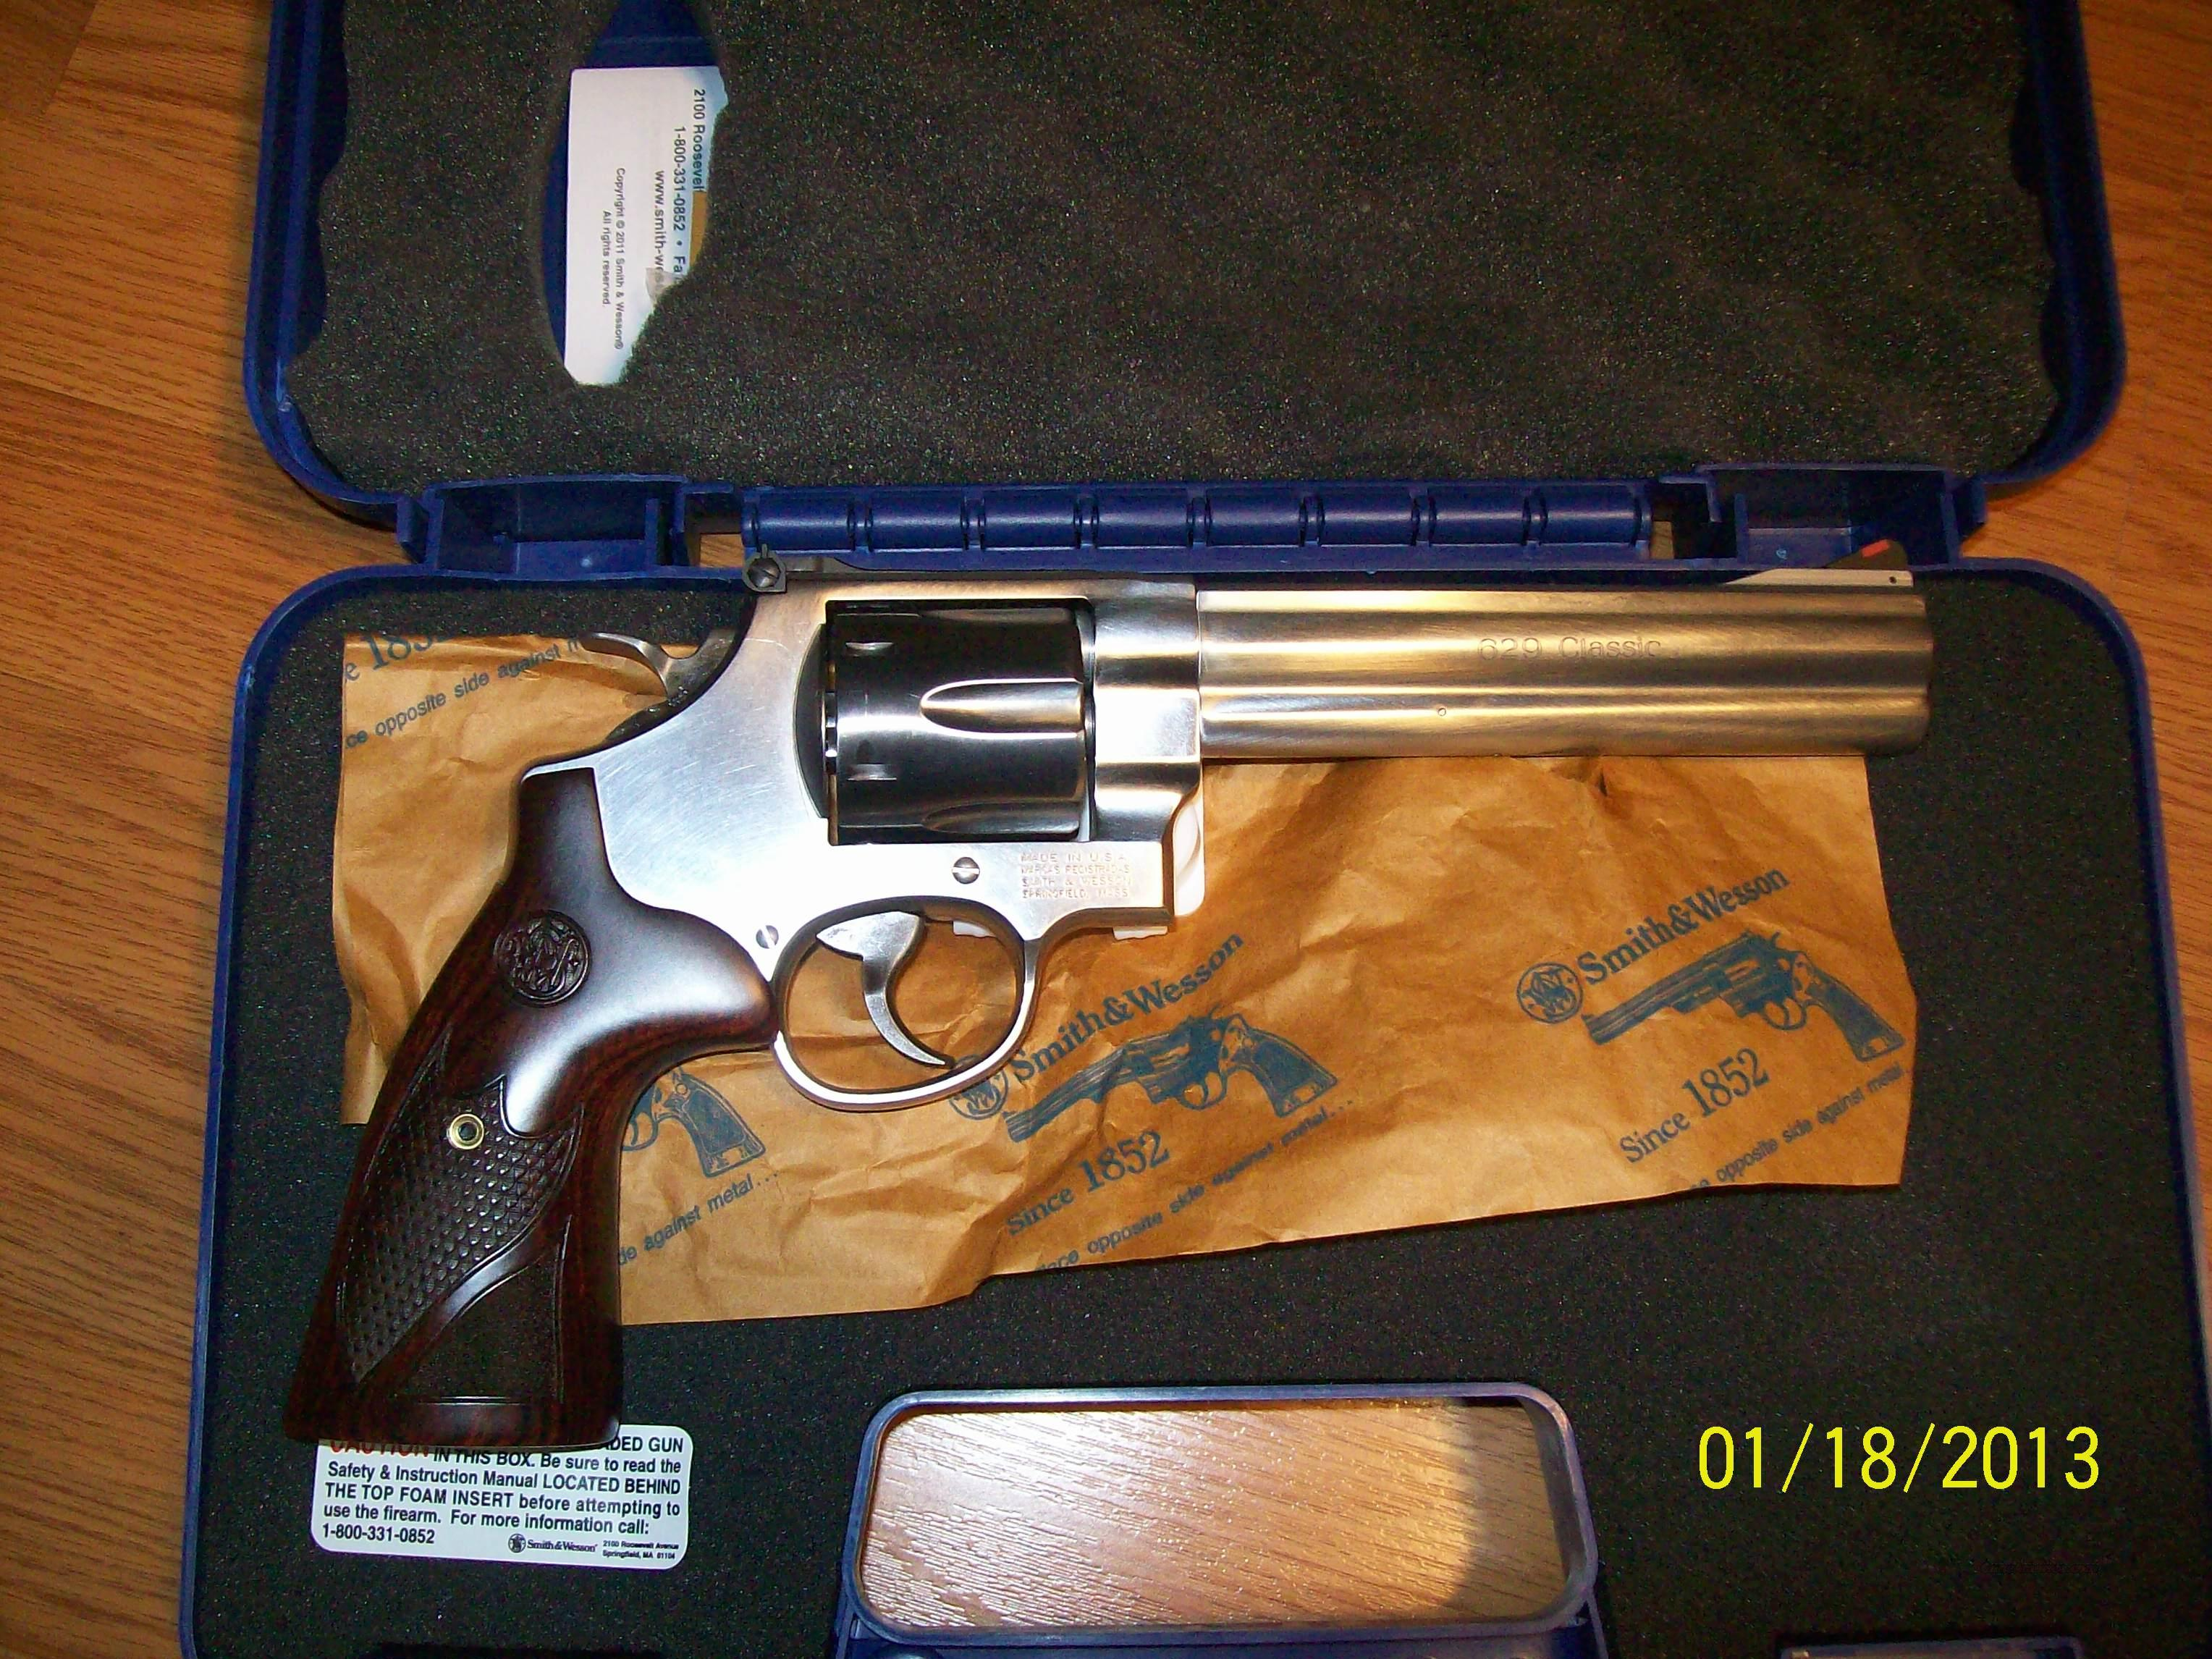 Smith & Wesson 44 Mag. 629 Classic - Never been Fired  Guns > Pistols > Smith & Wesson Revolvers > Model 629